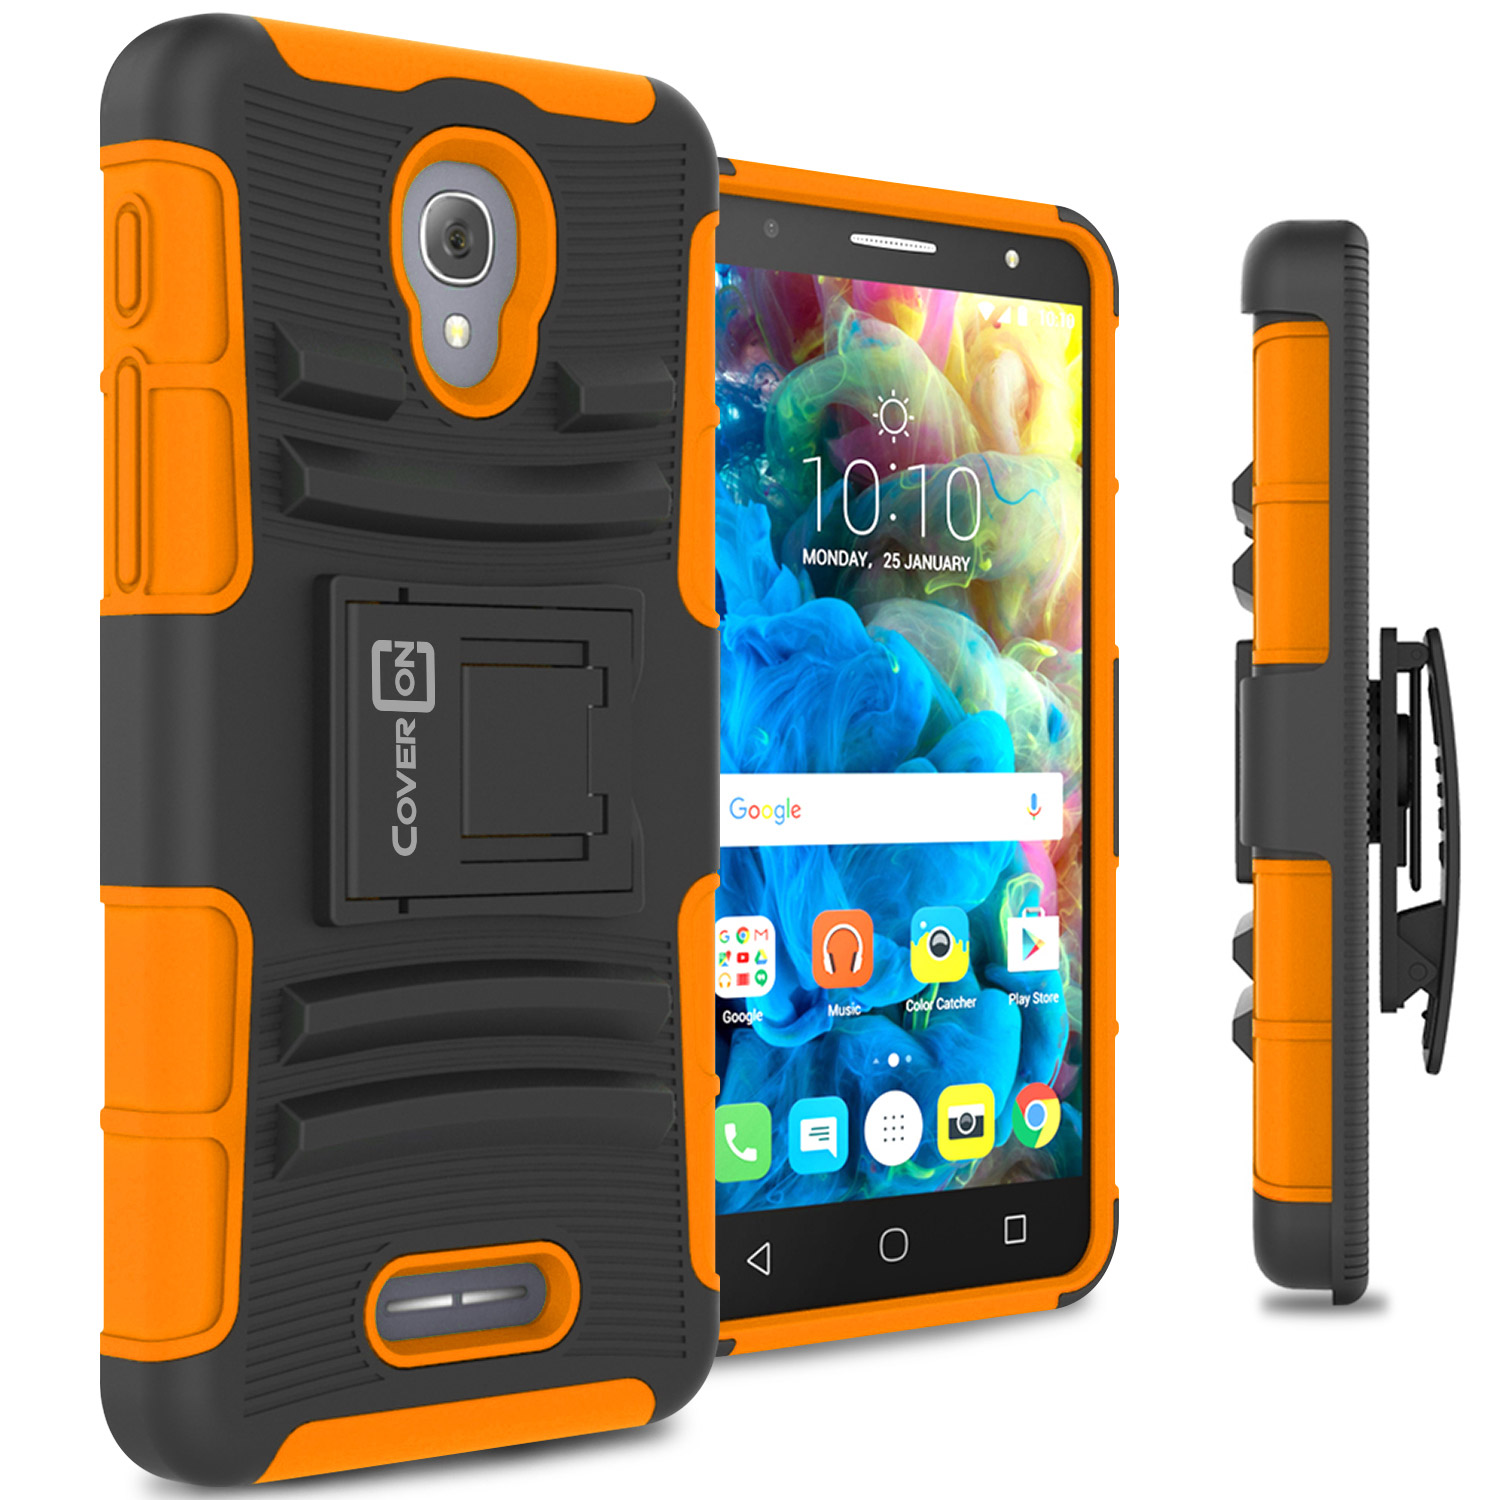 CoverON Alcatel Fierce 4 OneTouch Allura Pop 4+ Case, Explorer Series Protective Holster Belt Clip Phone Cover